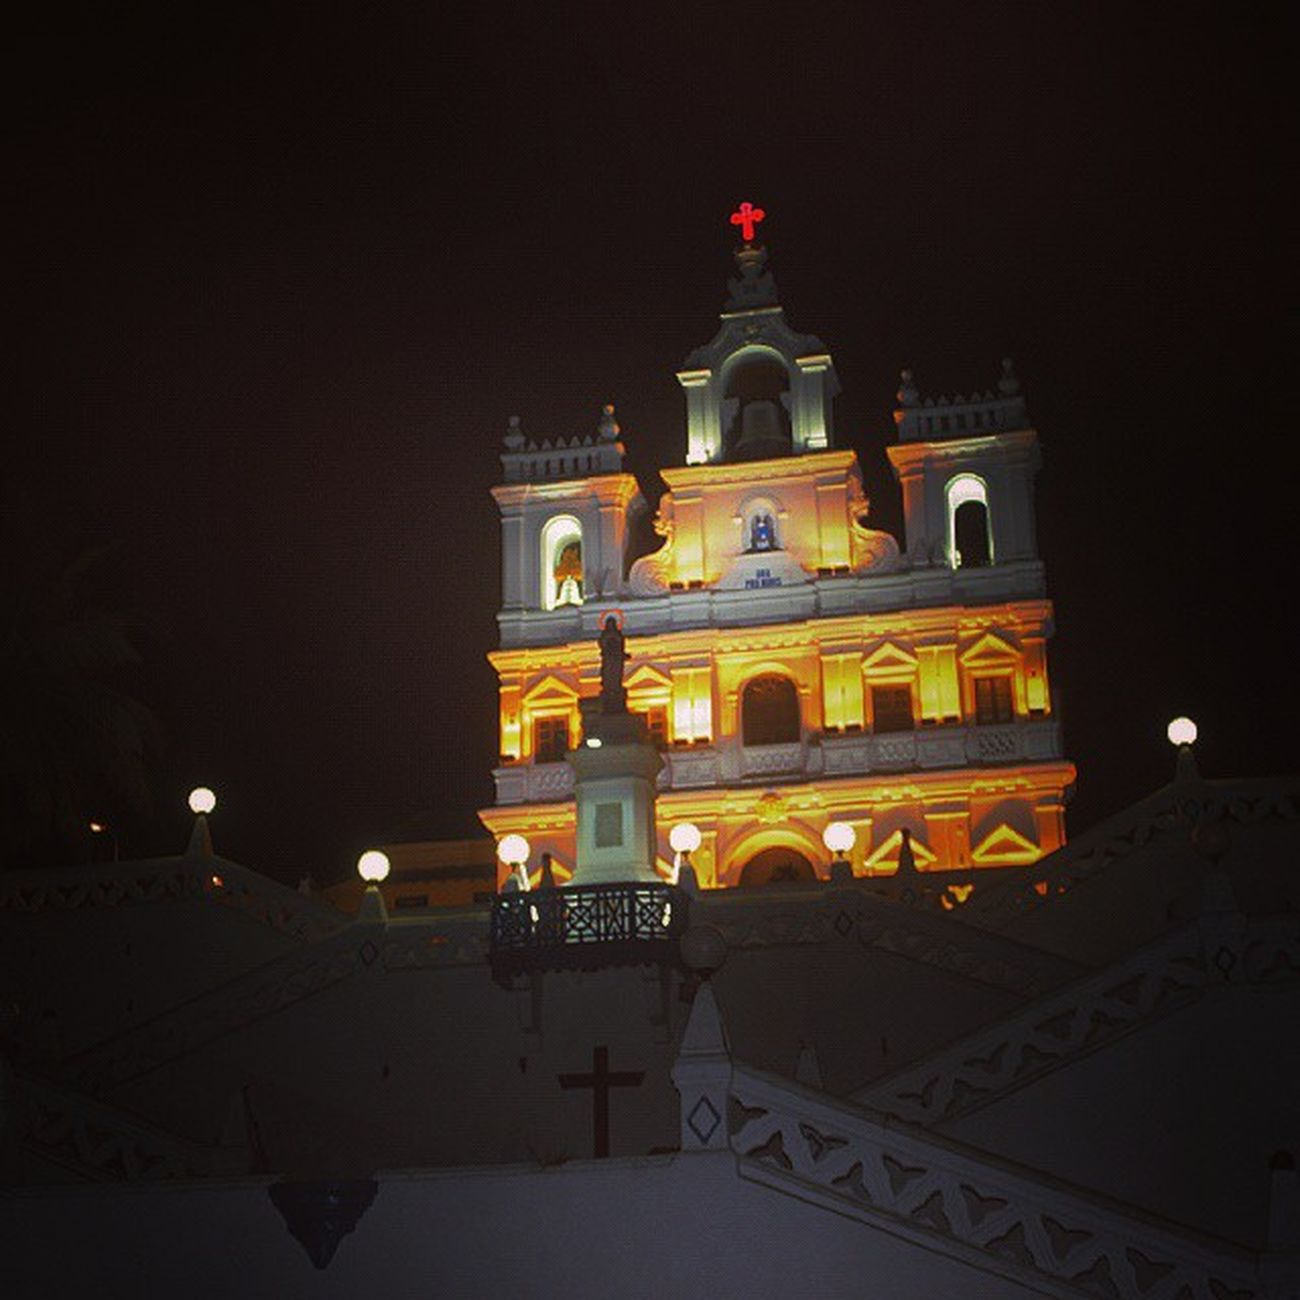 Panjimchurch Indoportuguese Architecture Photooftheday Building Architecture Style City Art Street Geometry Architecturelove Arts Lookingup Geometric City Pattern ArchiTexture Urban Heritage Perspective Abstract Beautiful Instagood Archlove designahd goaIndia mytraveldairies